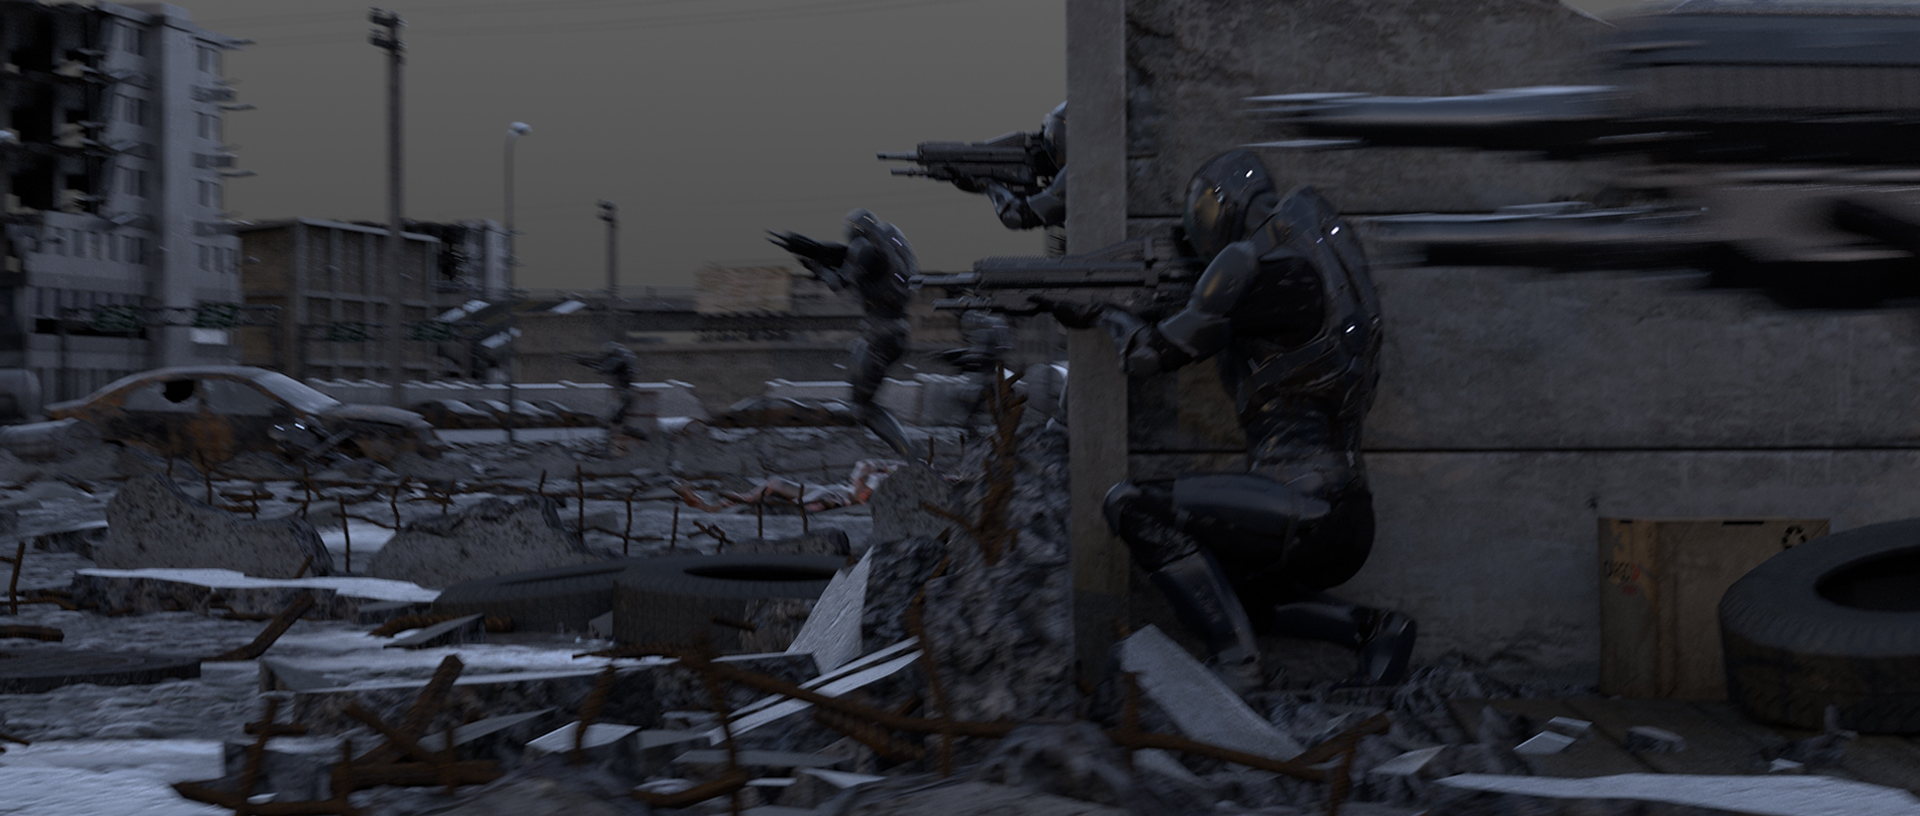 Lunar Animation's WAR. Final image comped in Nuke - After